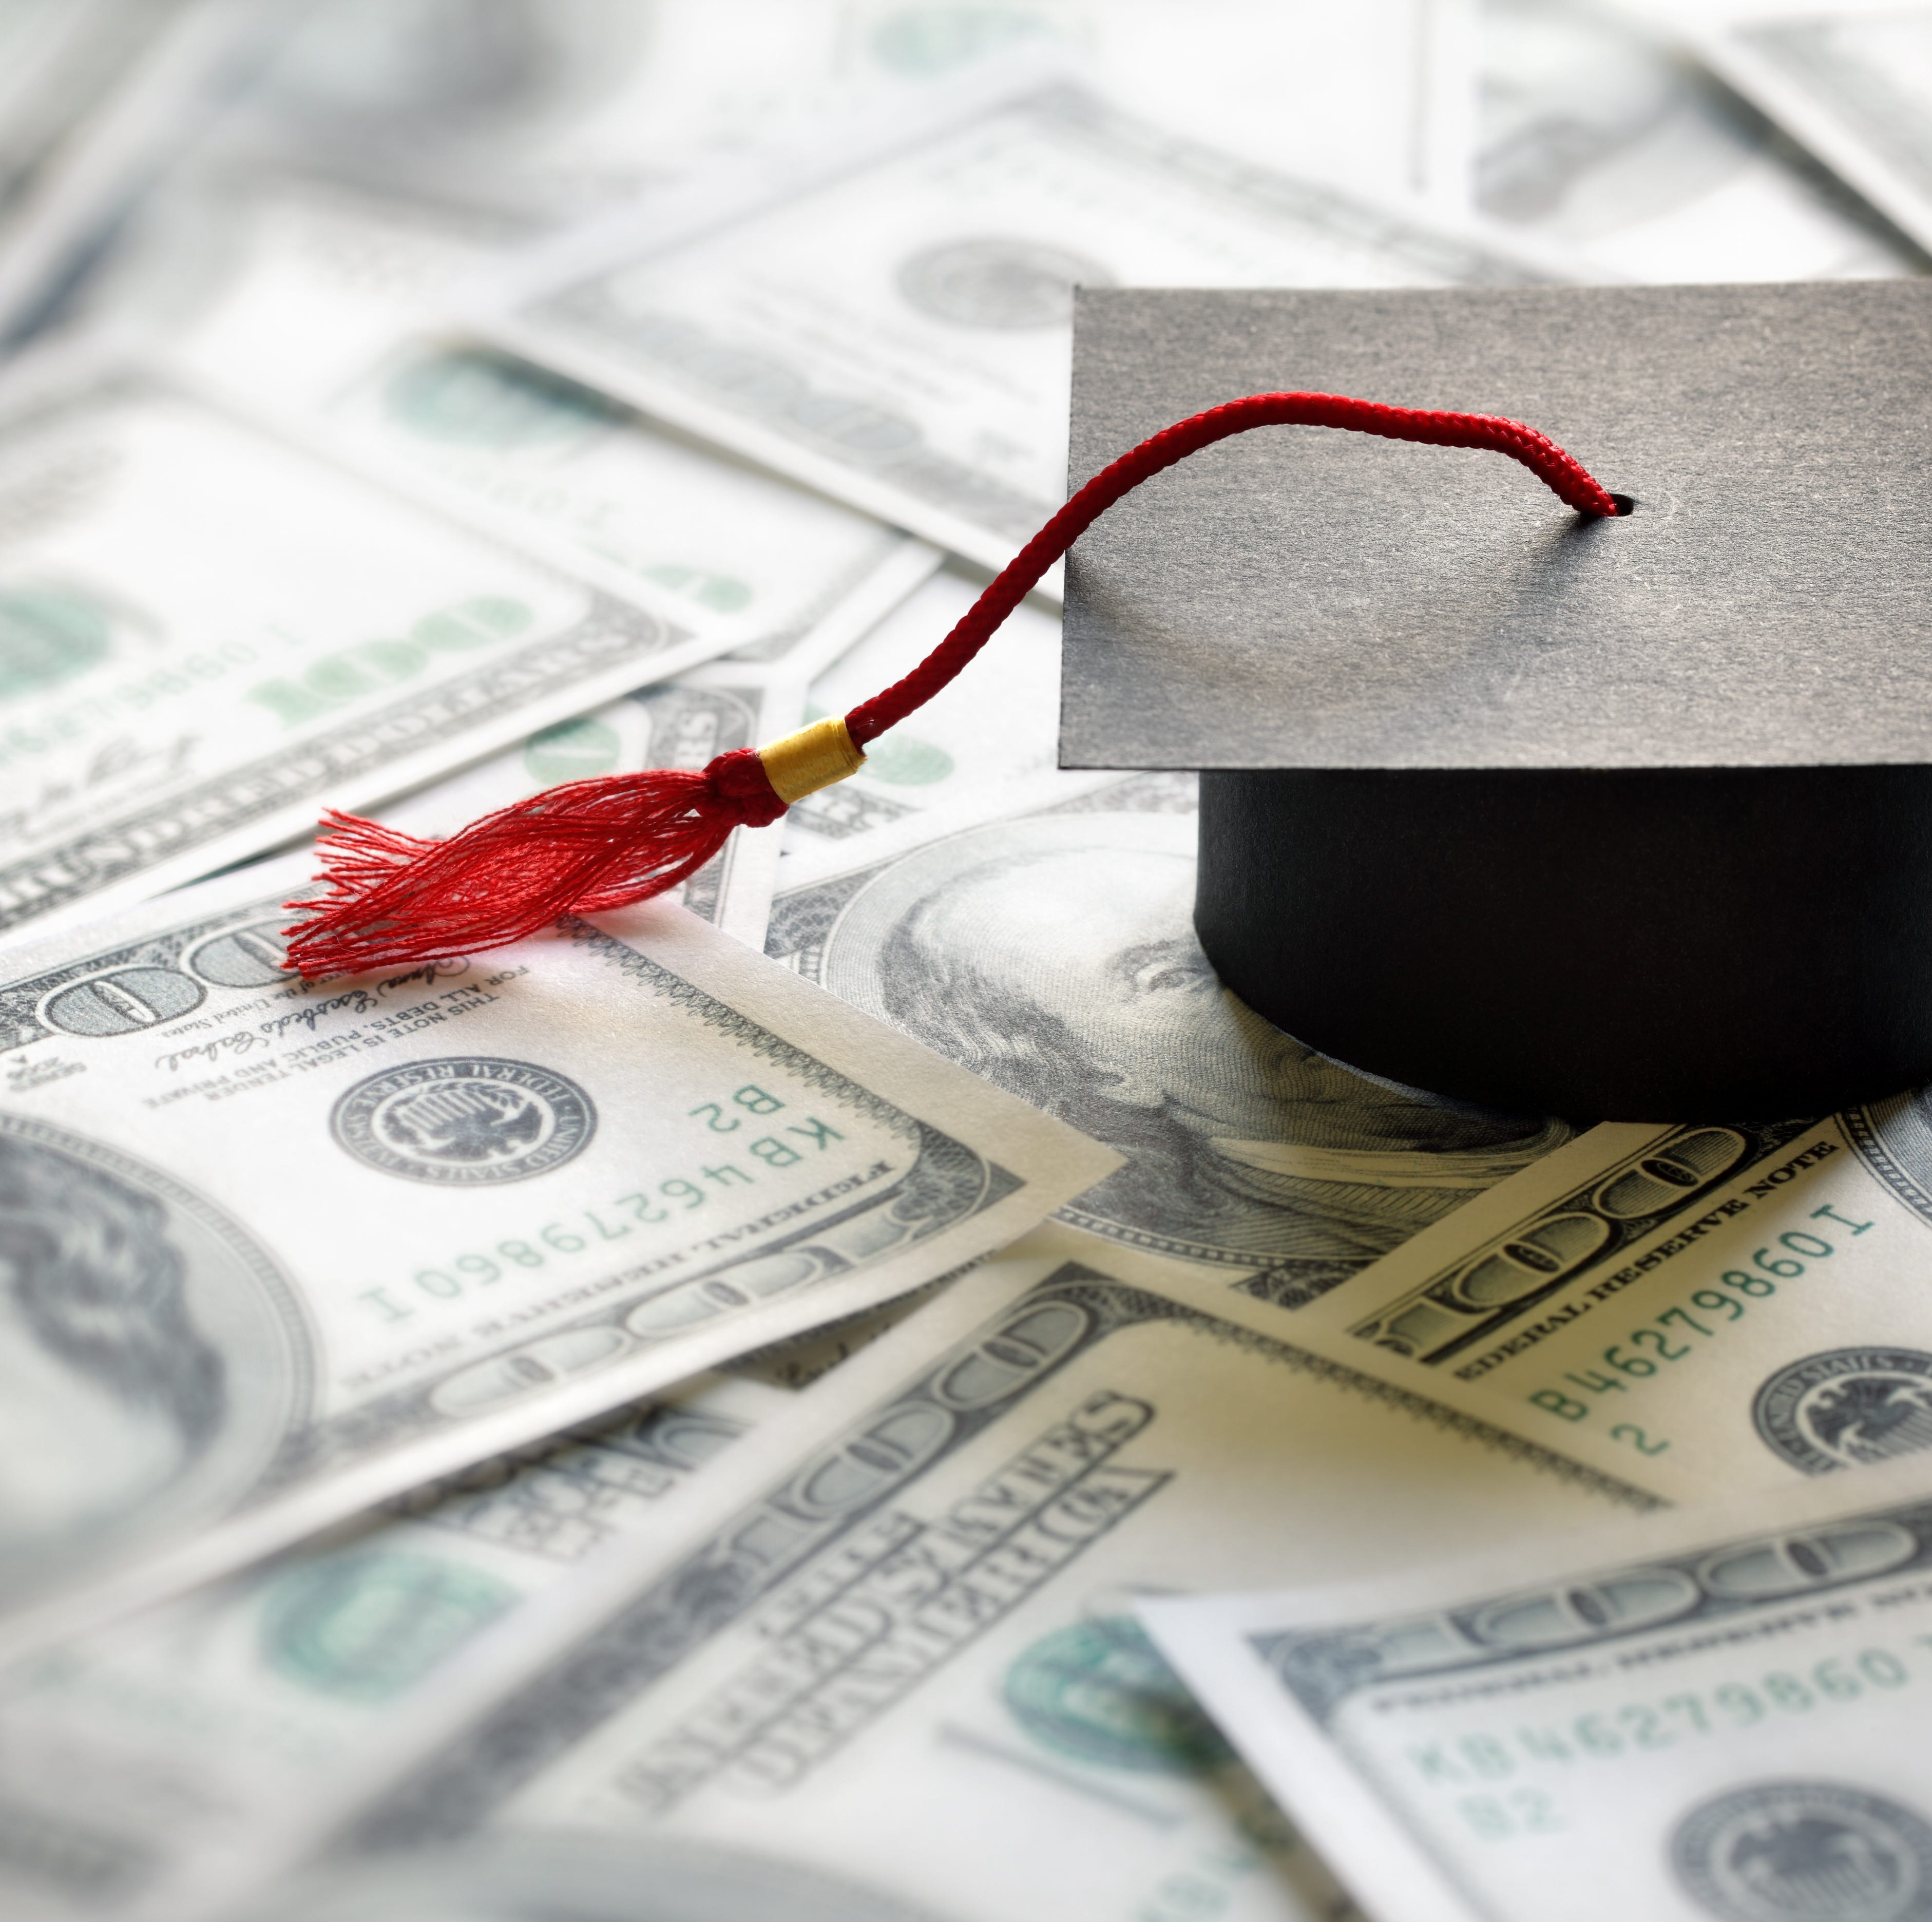 Bad SAT scores? Low GPA? The College Board has just the scholarship for you